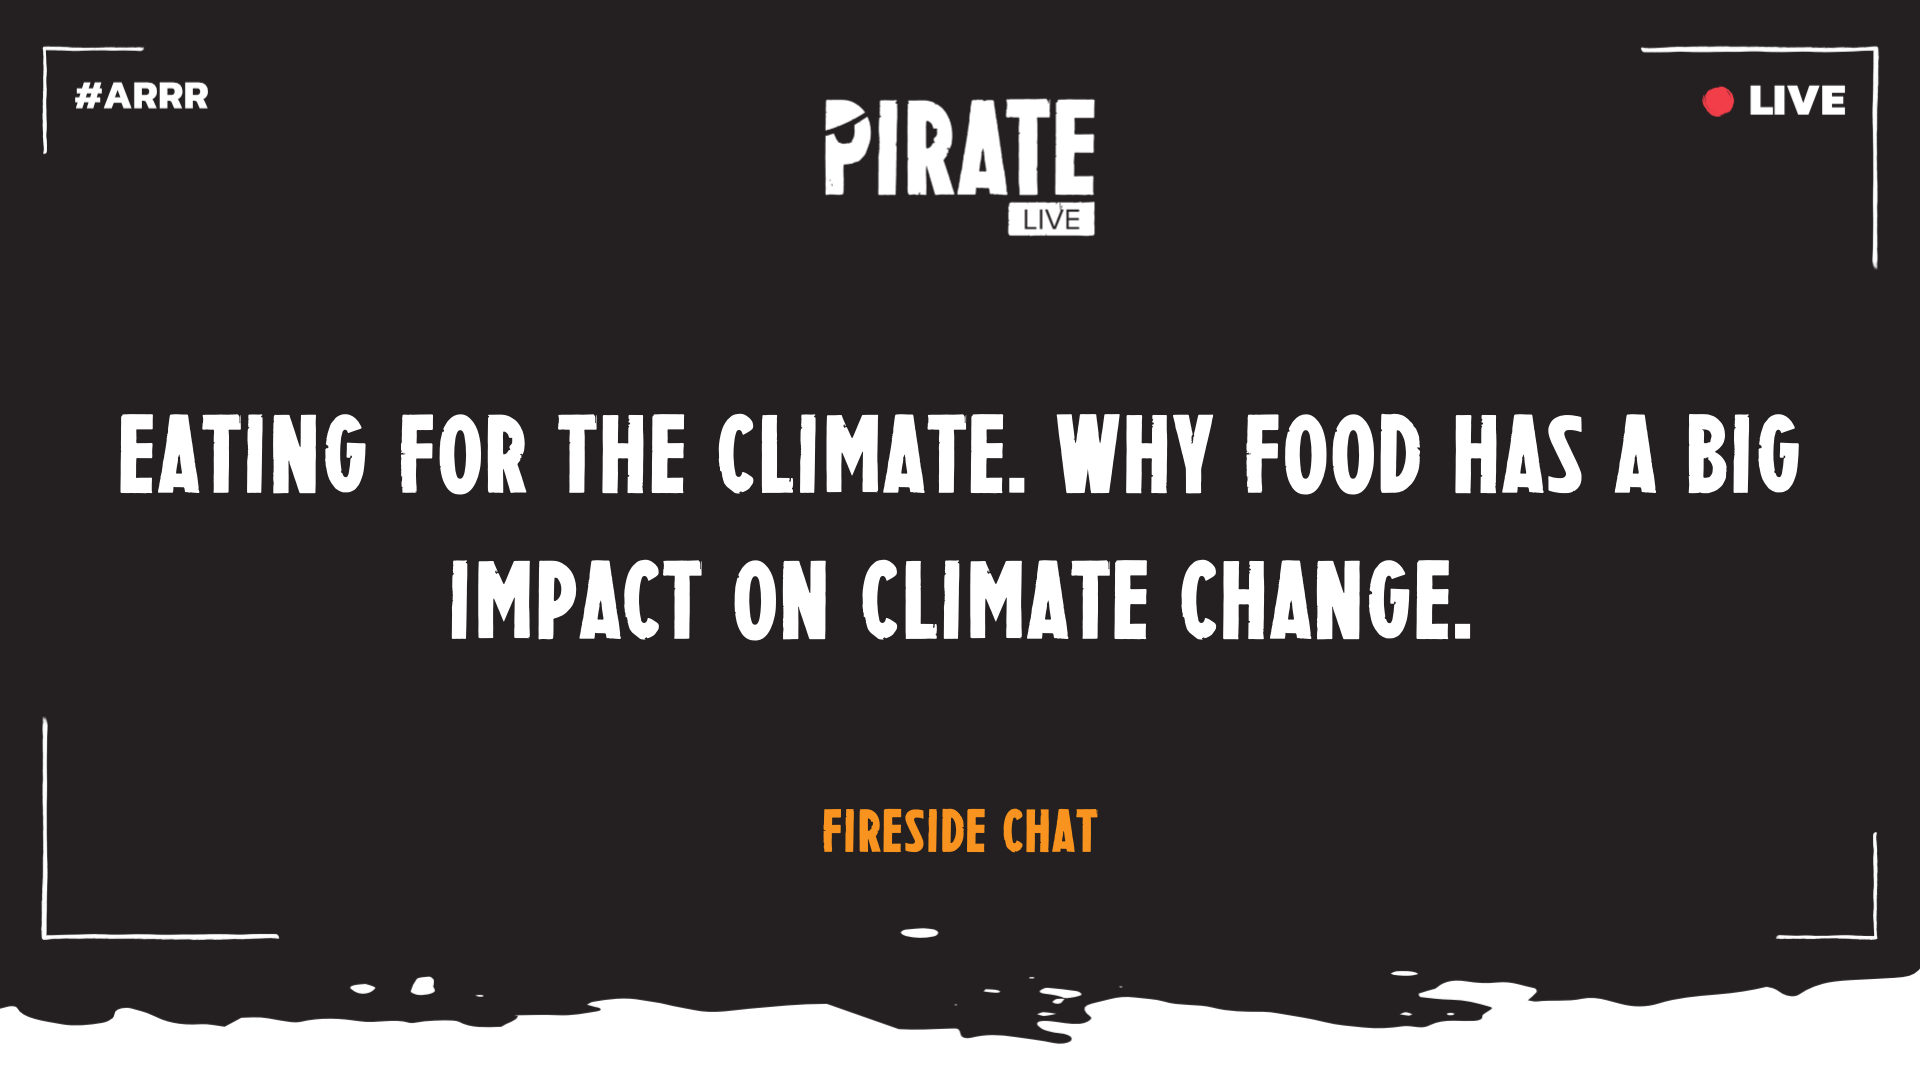 Eating for the climate. Why food has a big impact on climate change.